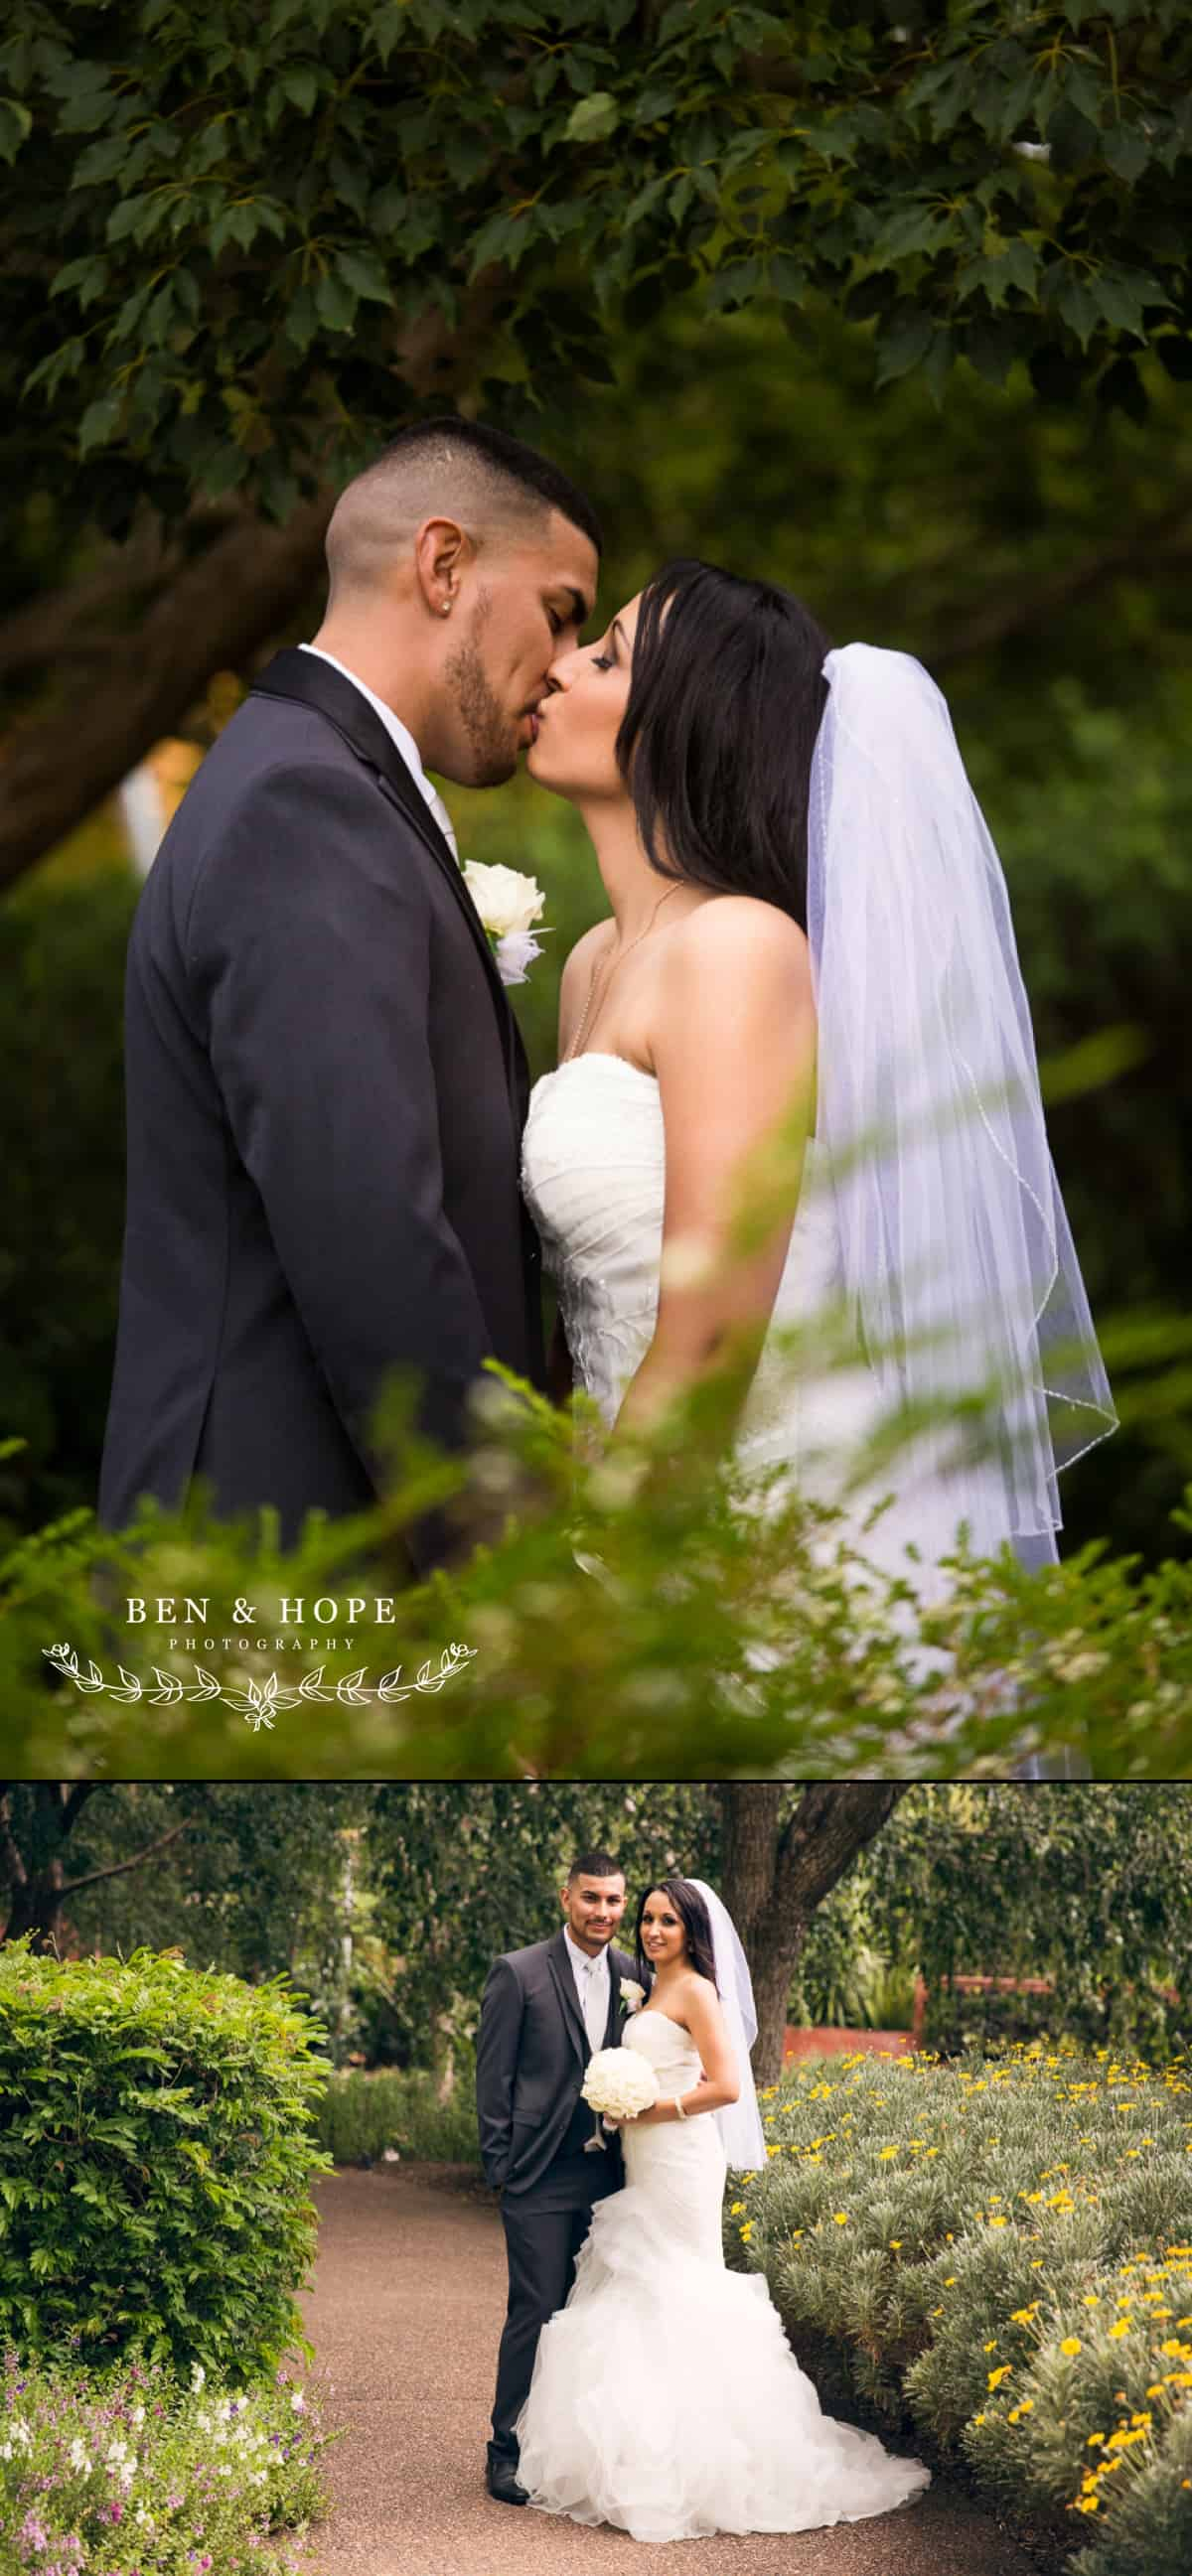 www.benandhopeweddings.com.au Kenny & Jose 10